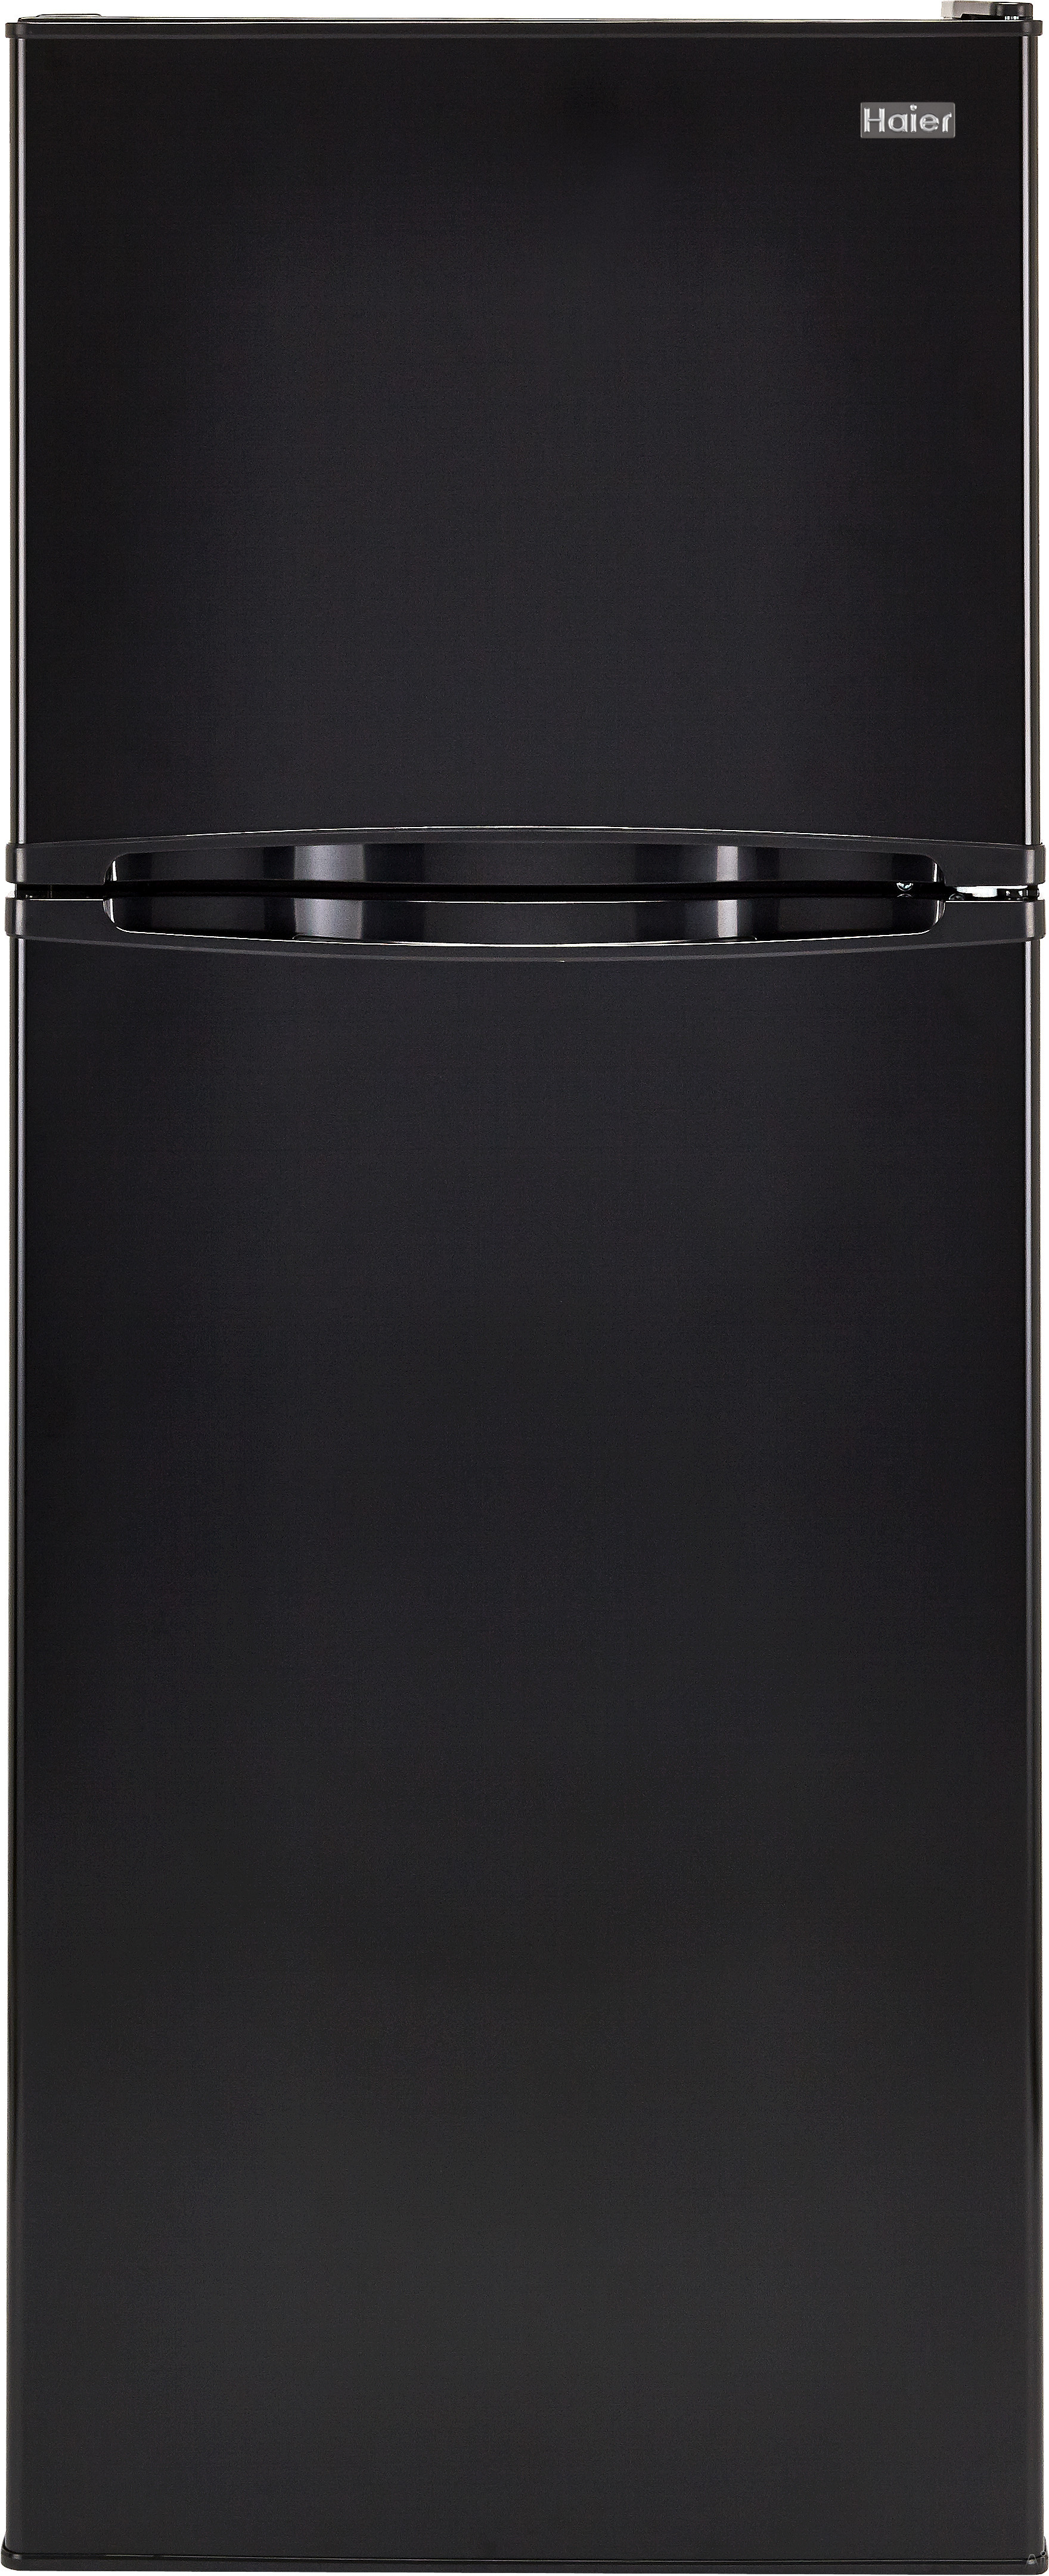 Haier HA10TG21SB 98 cu ft Top Mount Refrigerator with 2 Spill Proof Glass Shelves Humidity Controlled Crisper 3 Door Bins 1 Freezer Shelf 2 Freezer Door Bins and ADA Compliance Black